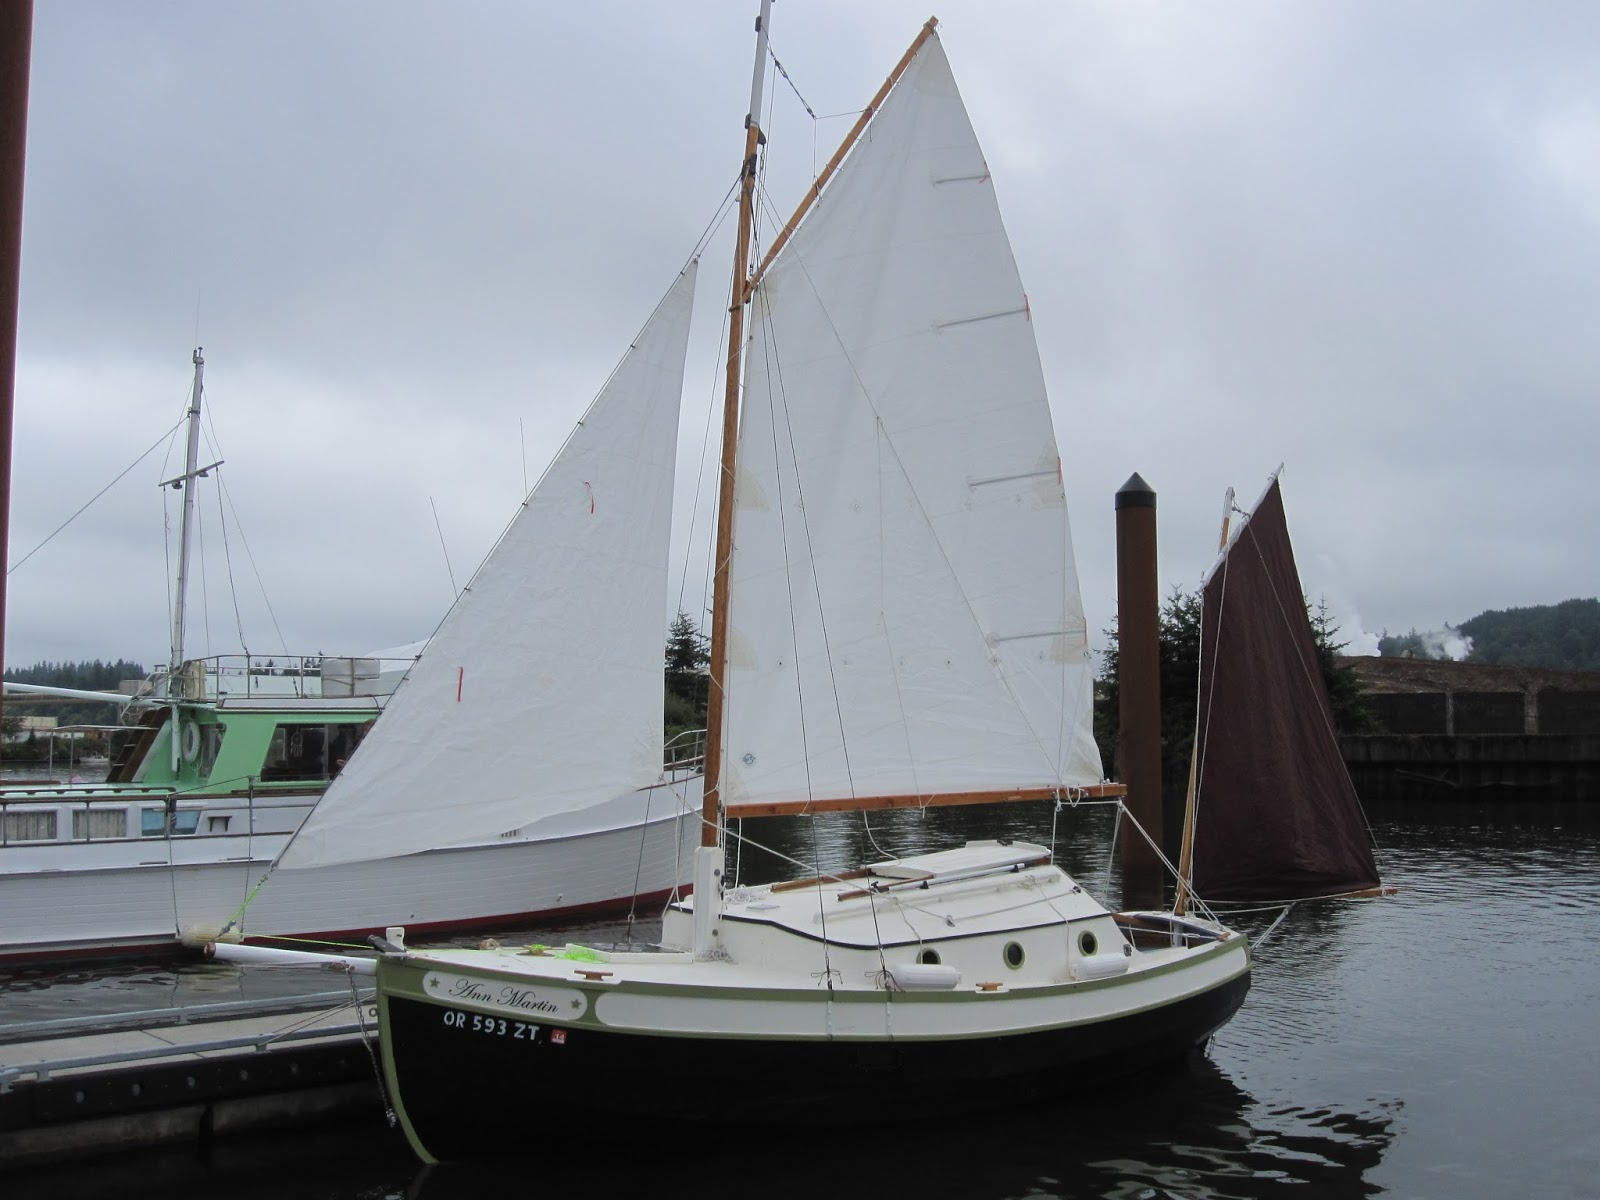 Penguin. A classic trailer yacht with serious space inside